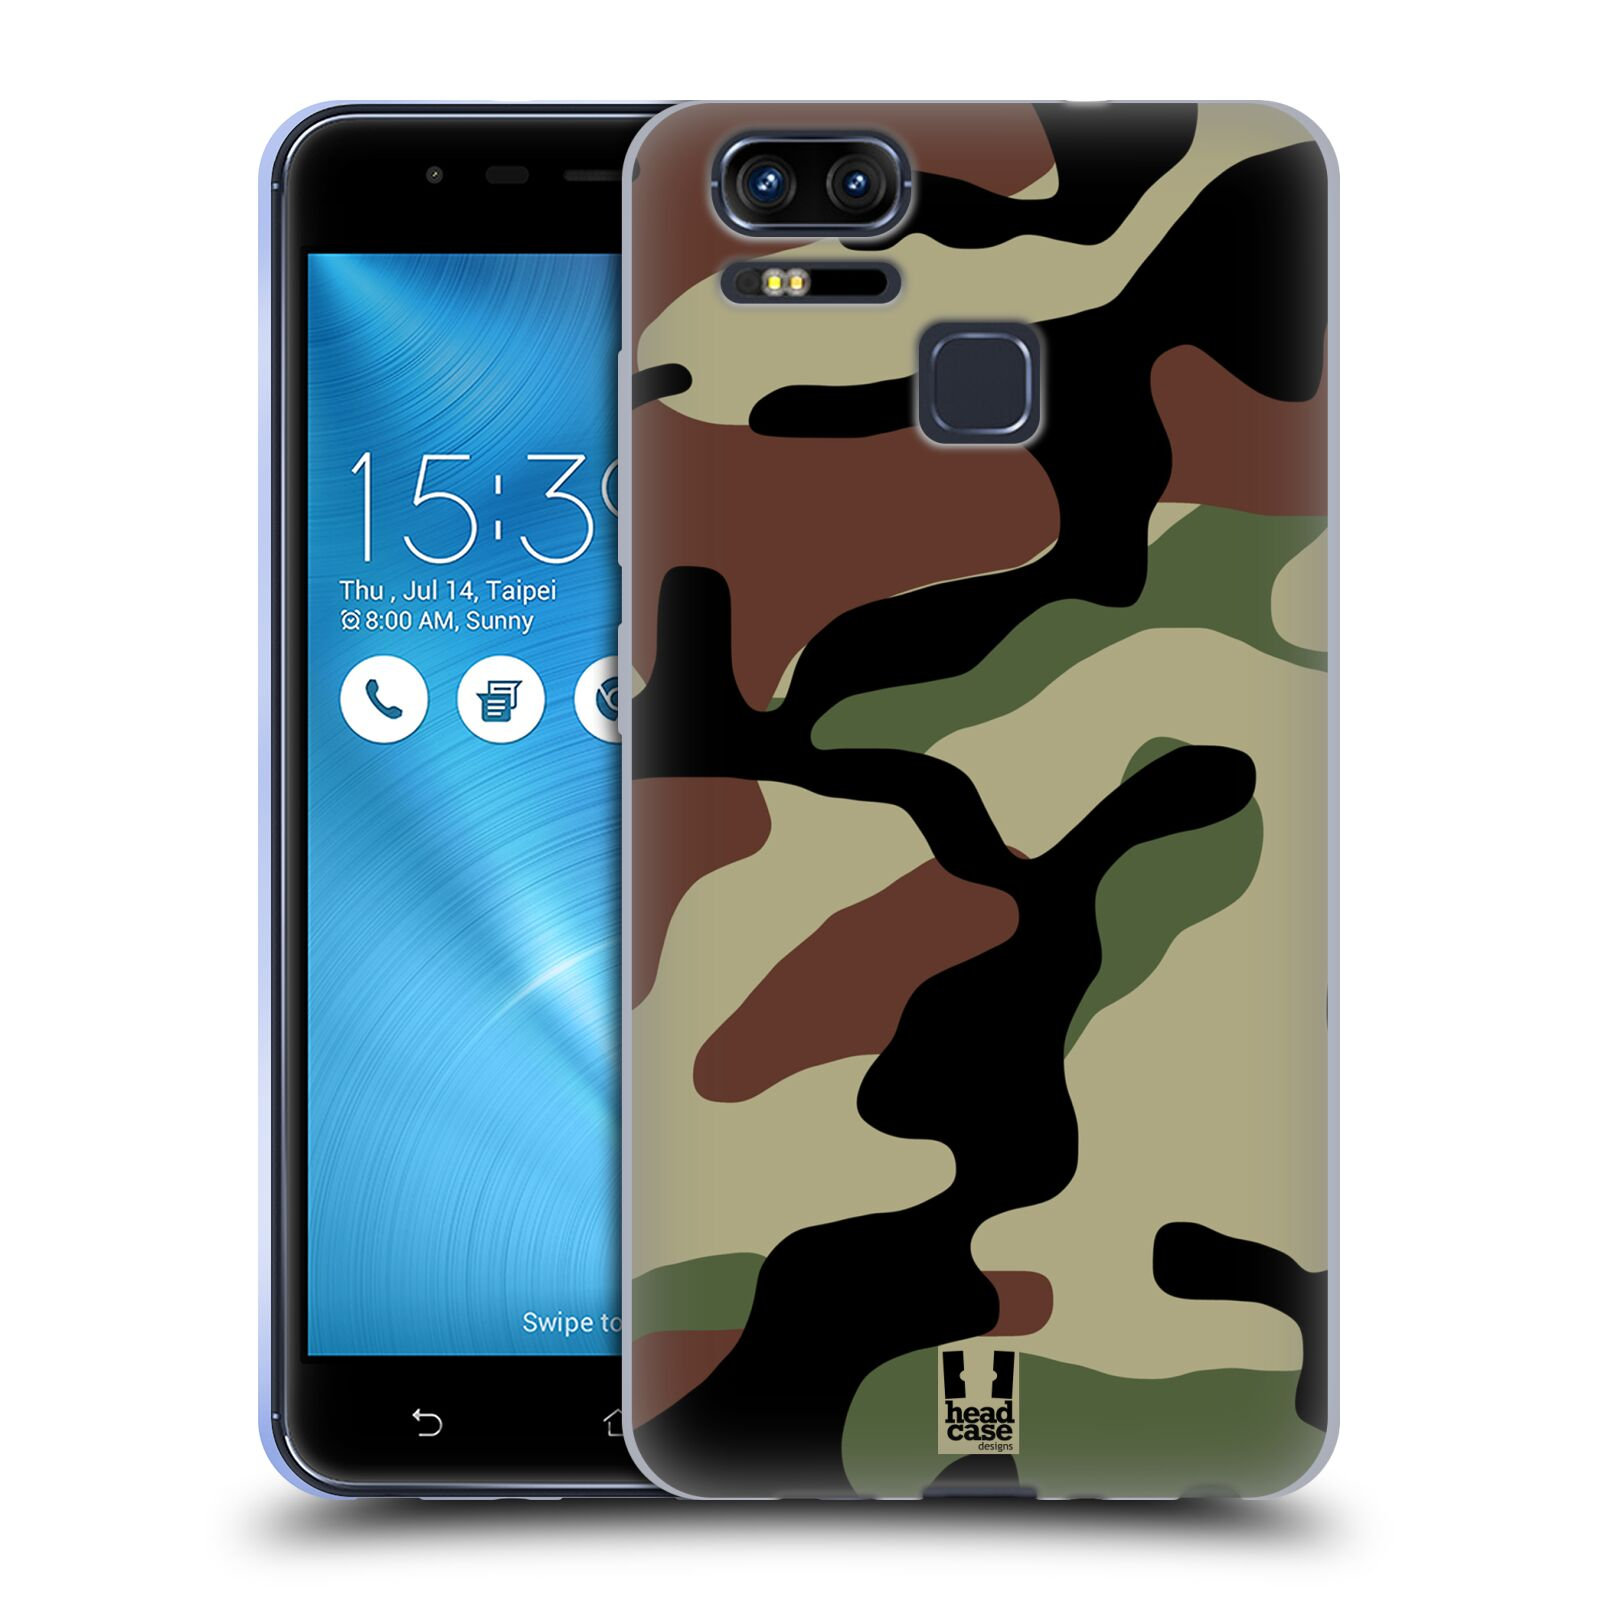 HEAD-CASE-DESIGNS-MILITARY-CAMO-SOFT-GEL-CASE-FOR-ASUS-ZENFONE-3-ZOOM-ZE553KL